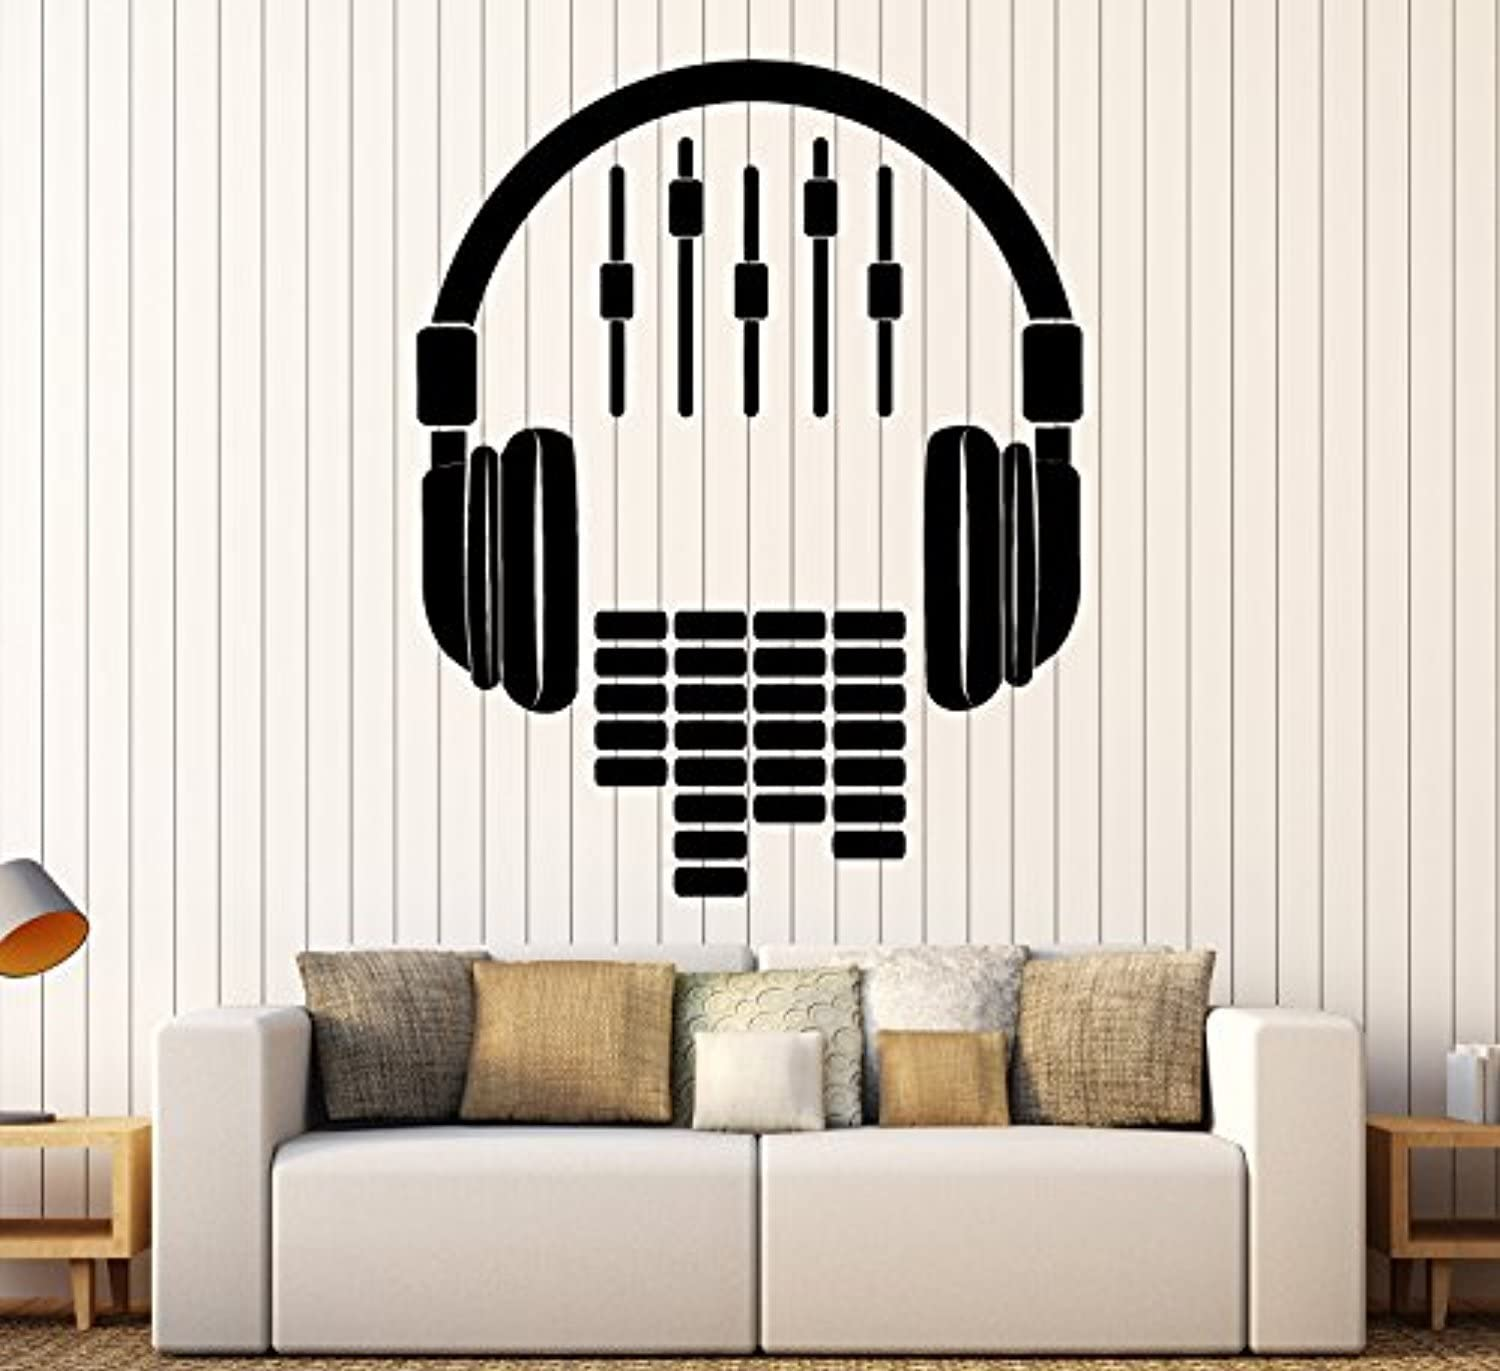 Art of Decals Amazing Home Decor-Large Vinyl Wall Decal Headphones Sound DJ Music Musical Stickers Large Decor 441 Made in The USA Removable